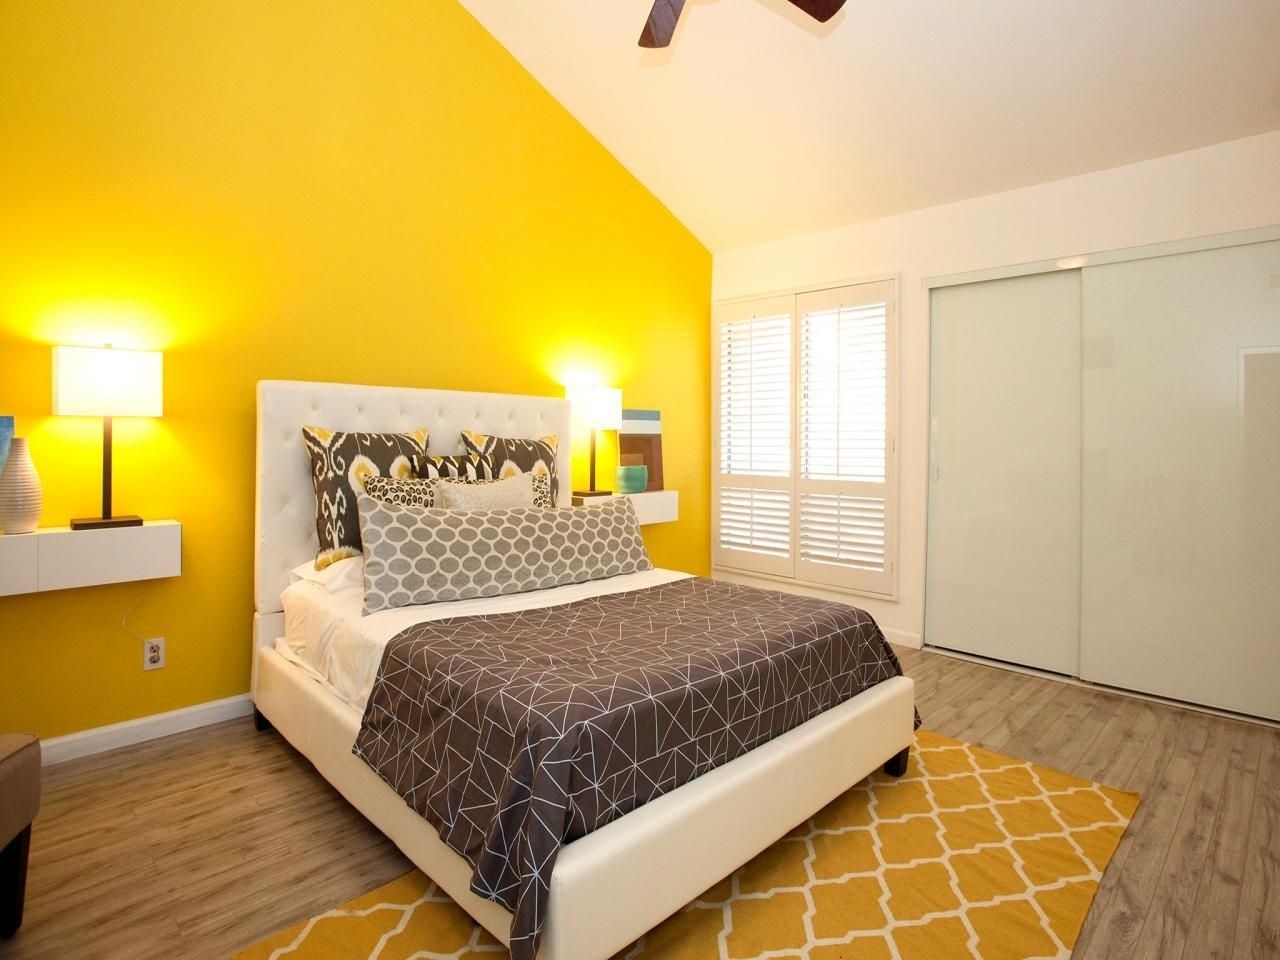 14 Living Room And Bedroom Makeovers From House Hunters Renovation In Most Popular Wall Accents For Yellow Room (View 2 of 15)